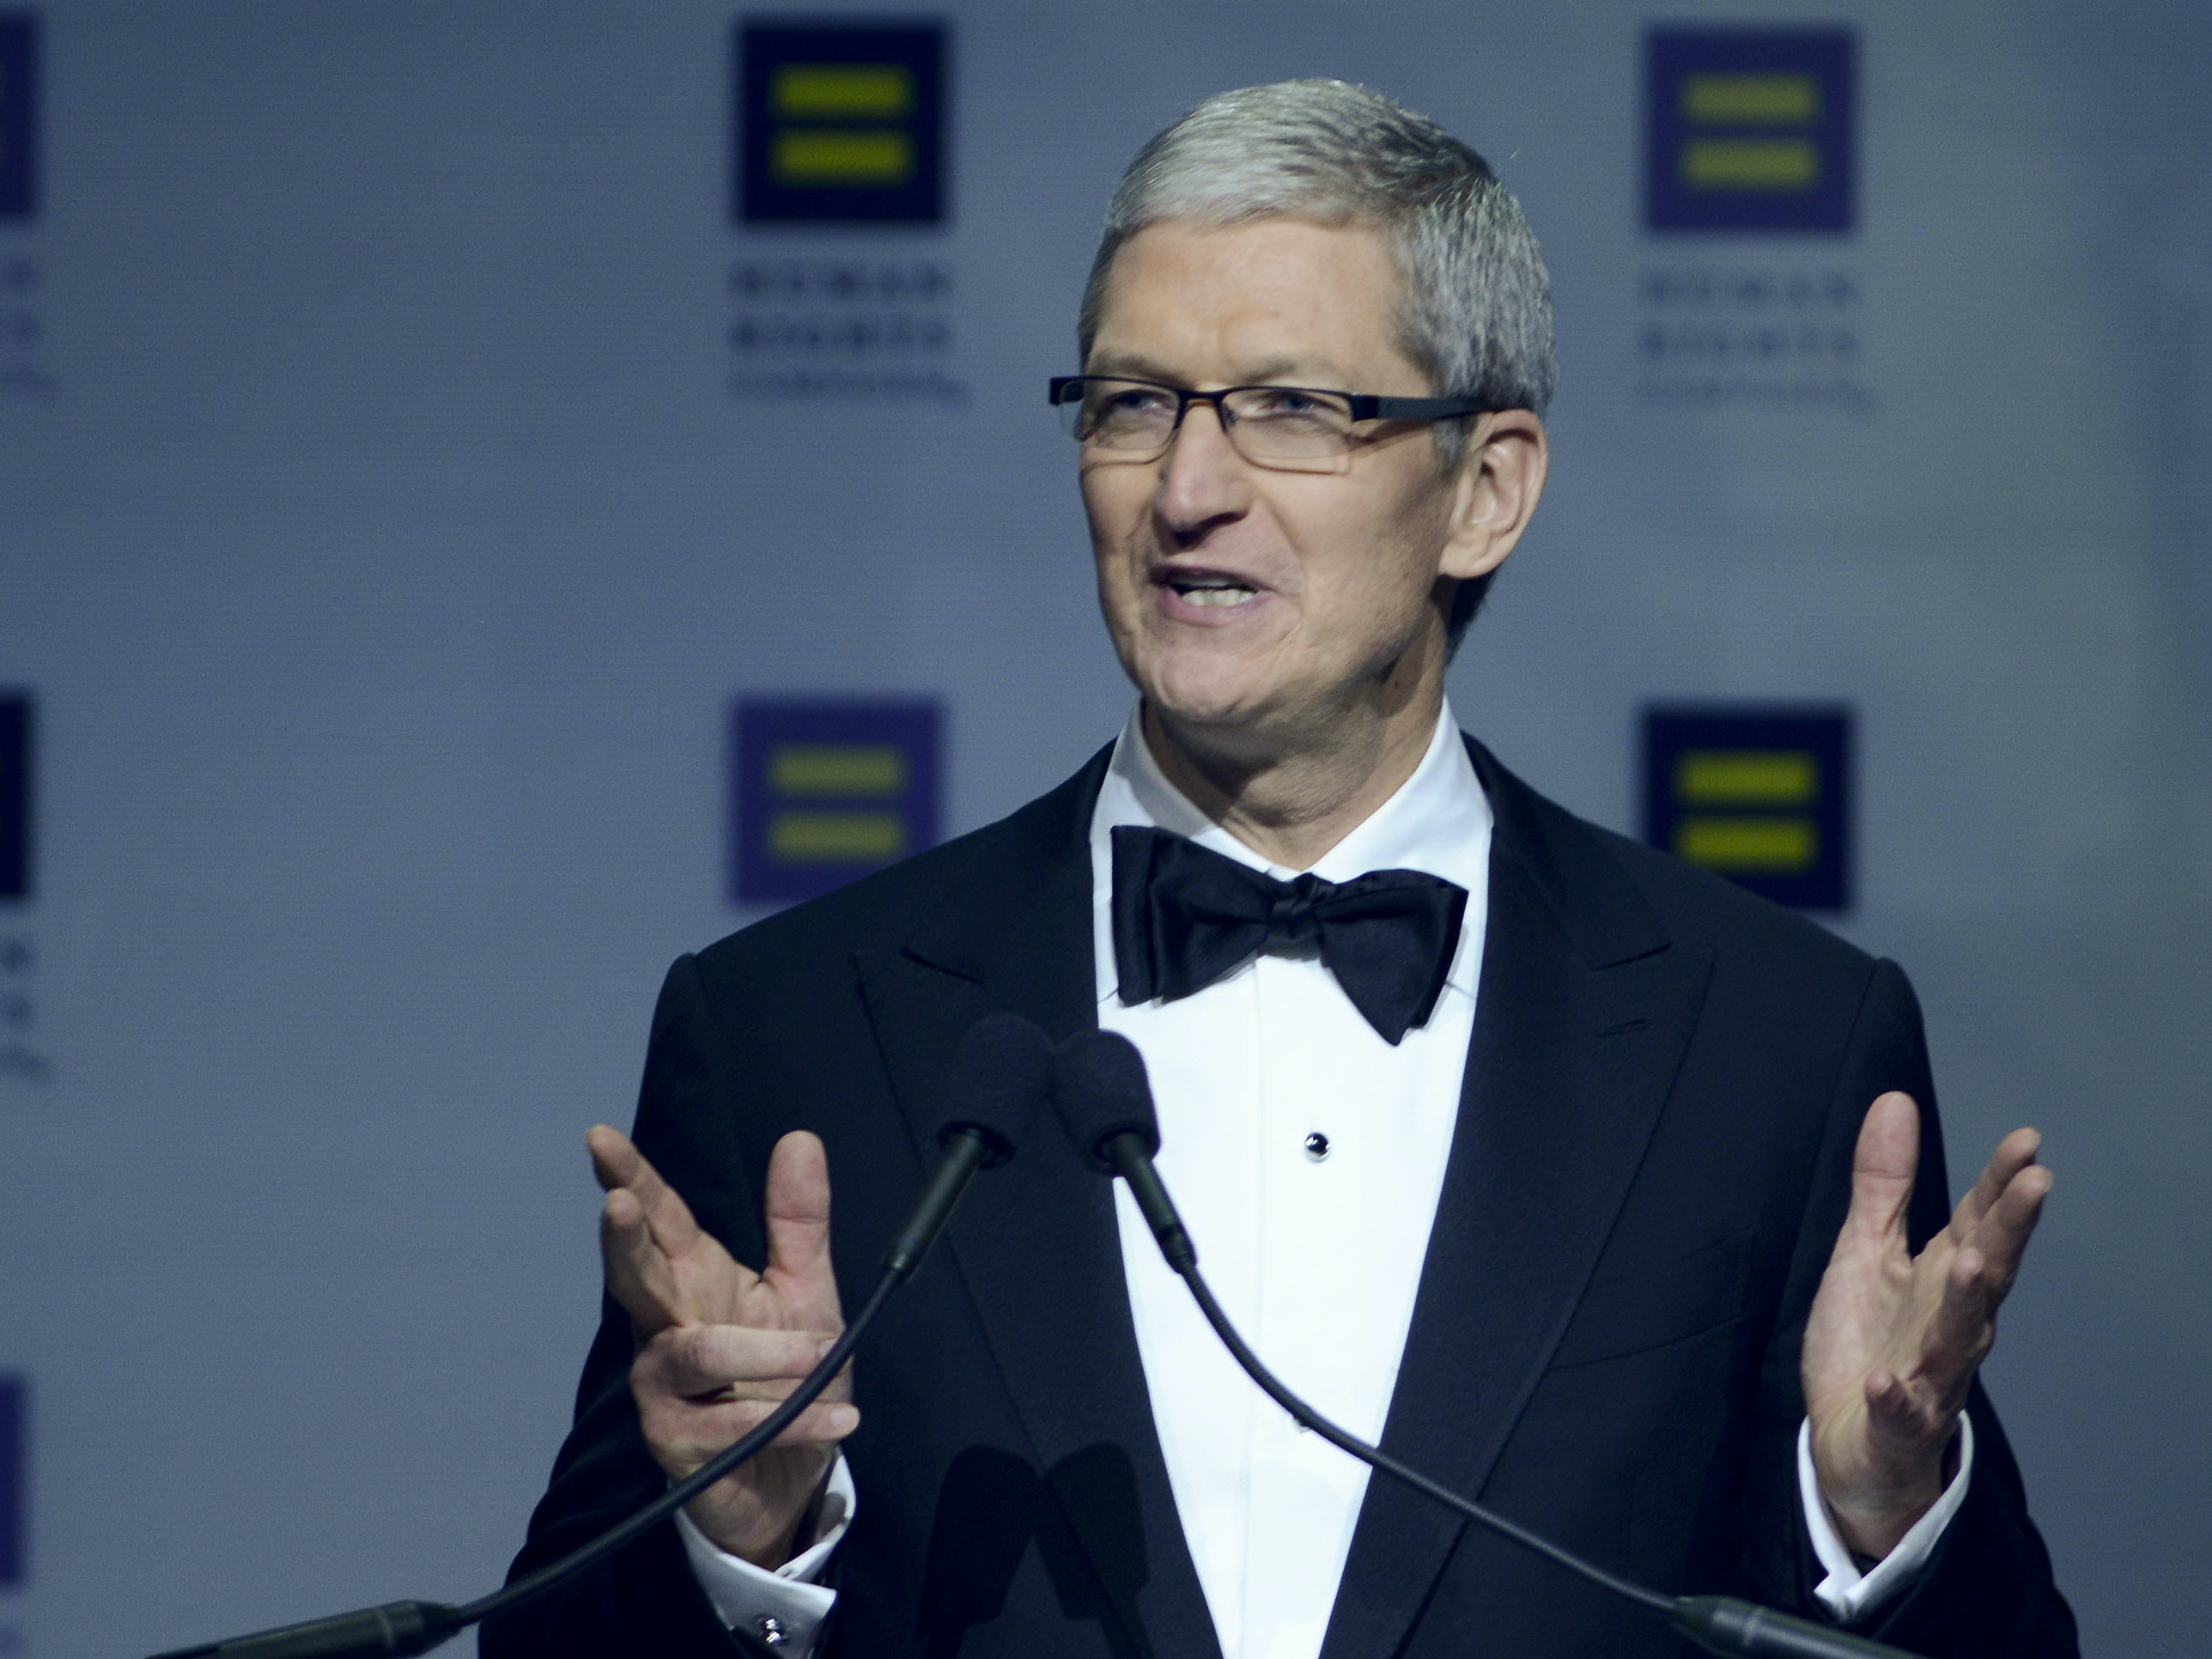 WASHINGTON, DC - OCTOBER 03:  Apple CEO Tim Cook speaks during the 19th Annual Human Rights Campaign National Dinner at Walter E. Washington Convention Center on October 3, 2015 in Washington, DC.  (Photo by Leigh Vogel/Getty Images)